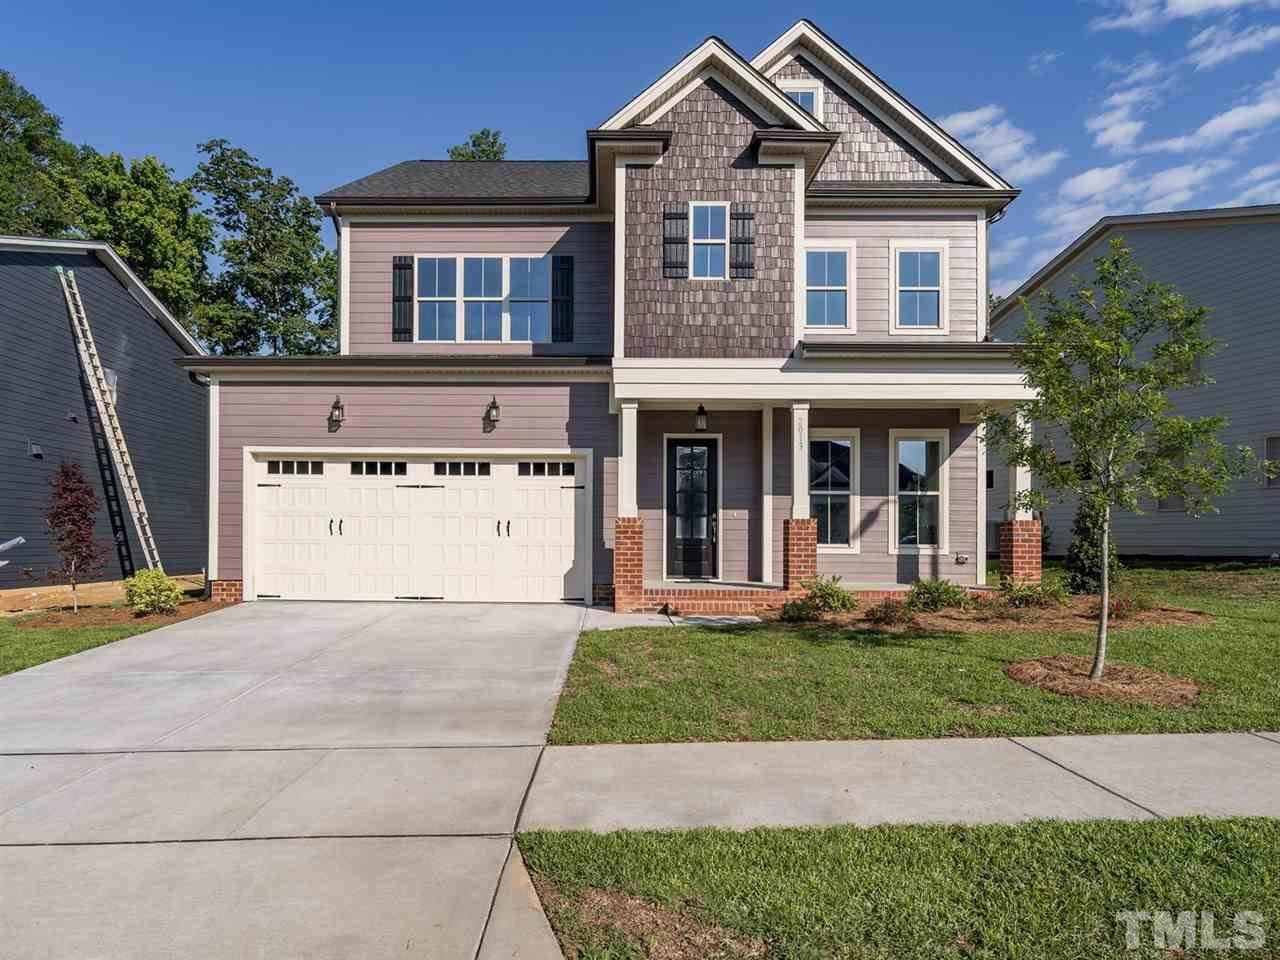 2013 Abbey Marie Lane, Fuquay Varina, NC 27526 - #: 2291042